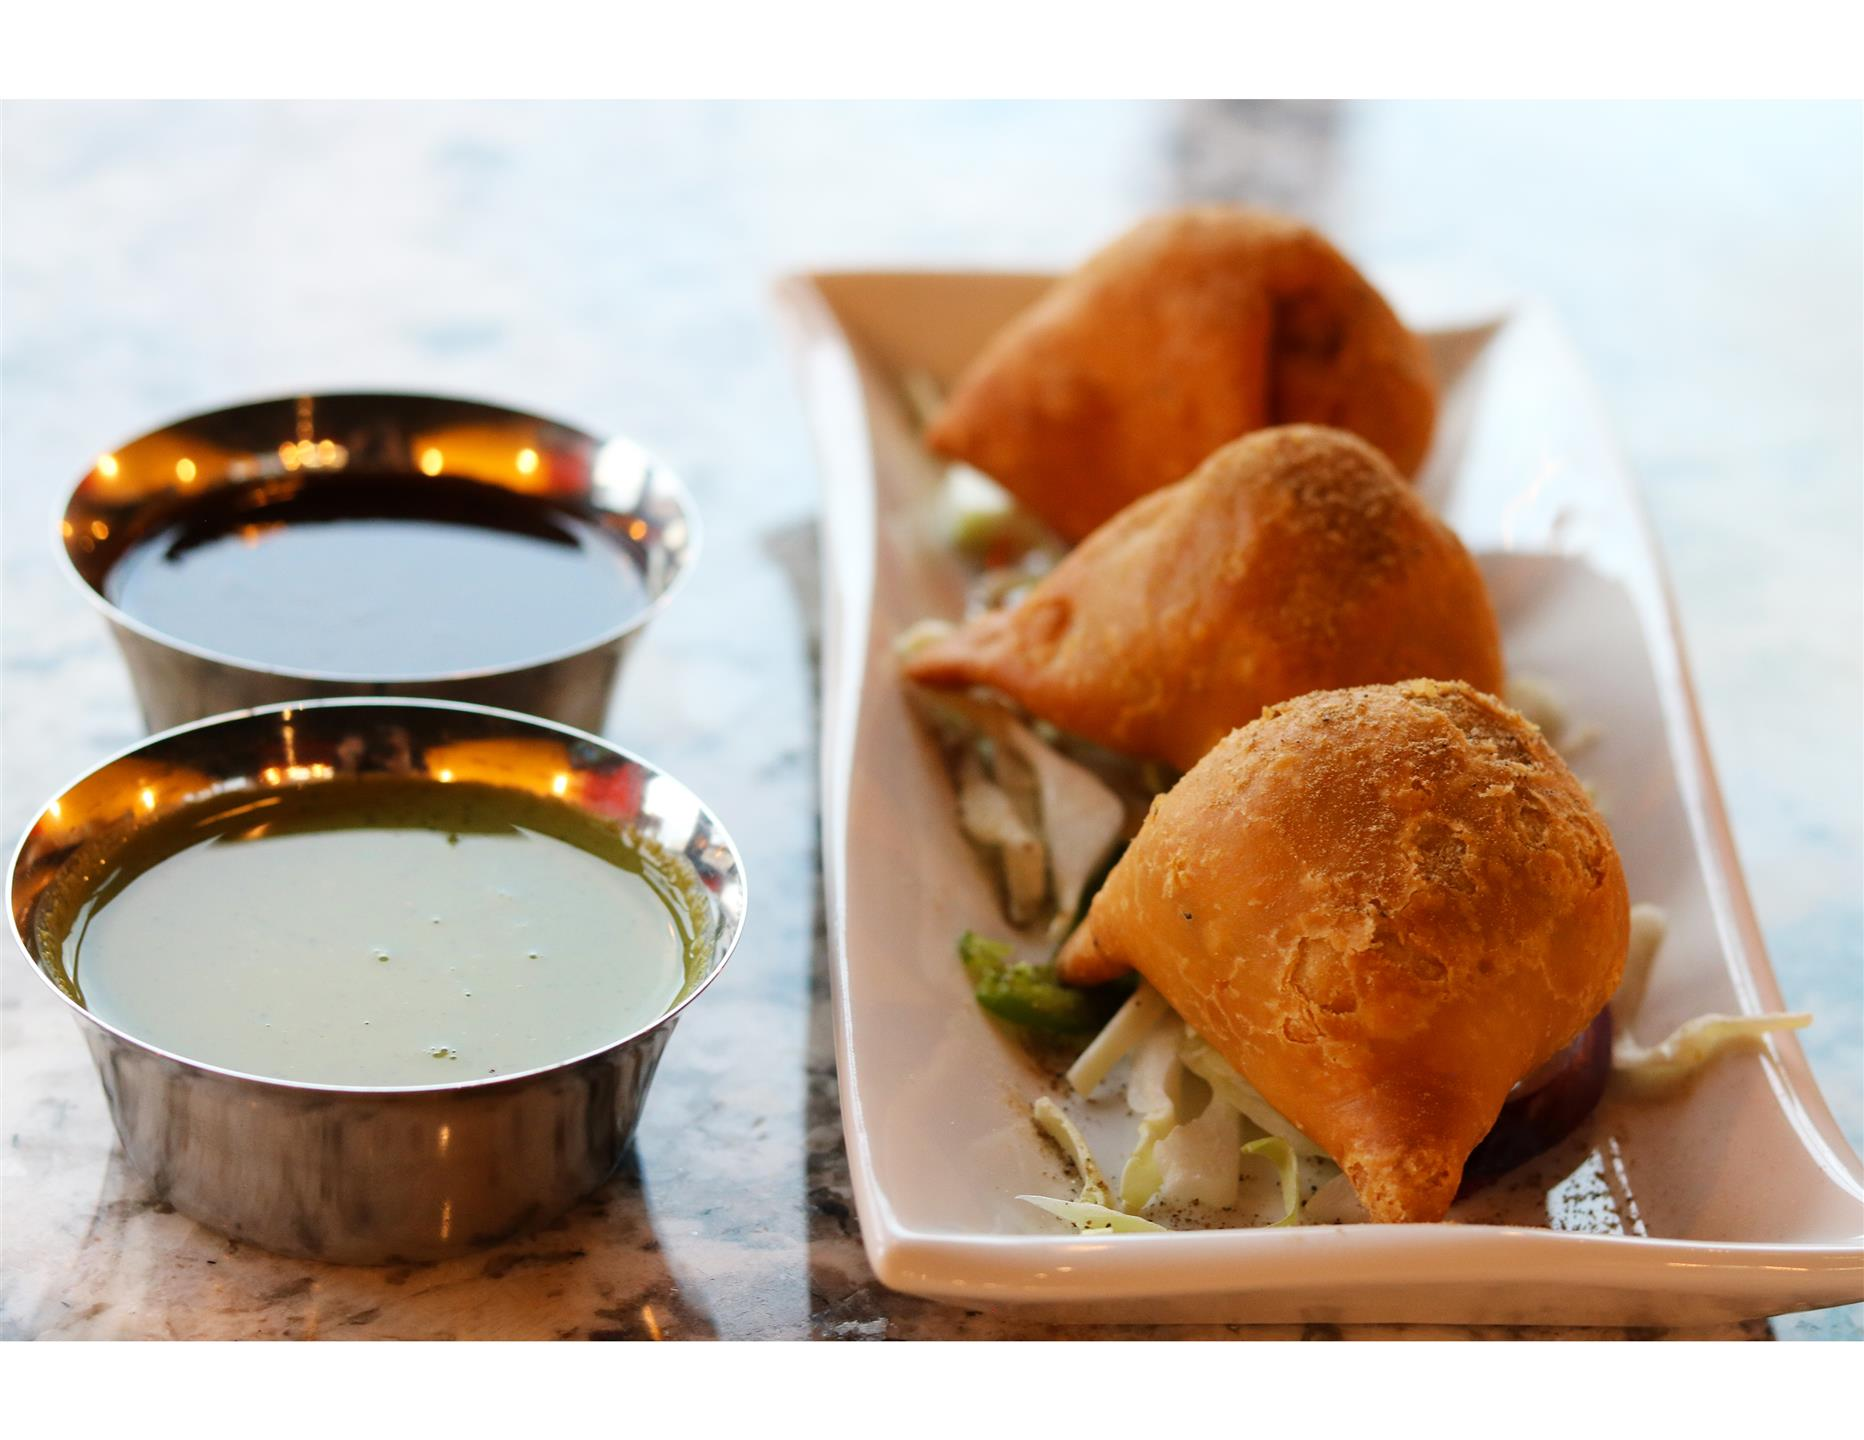 samosa appetizer with dipping sauces